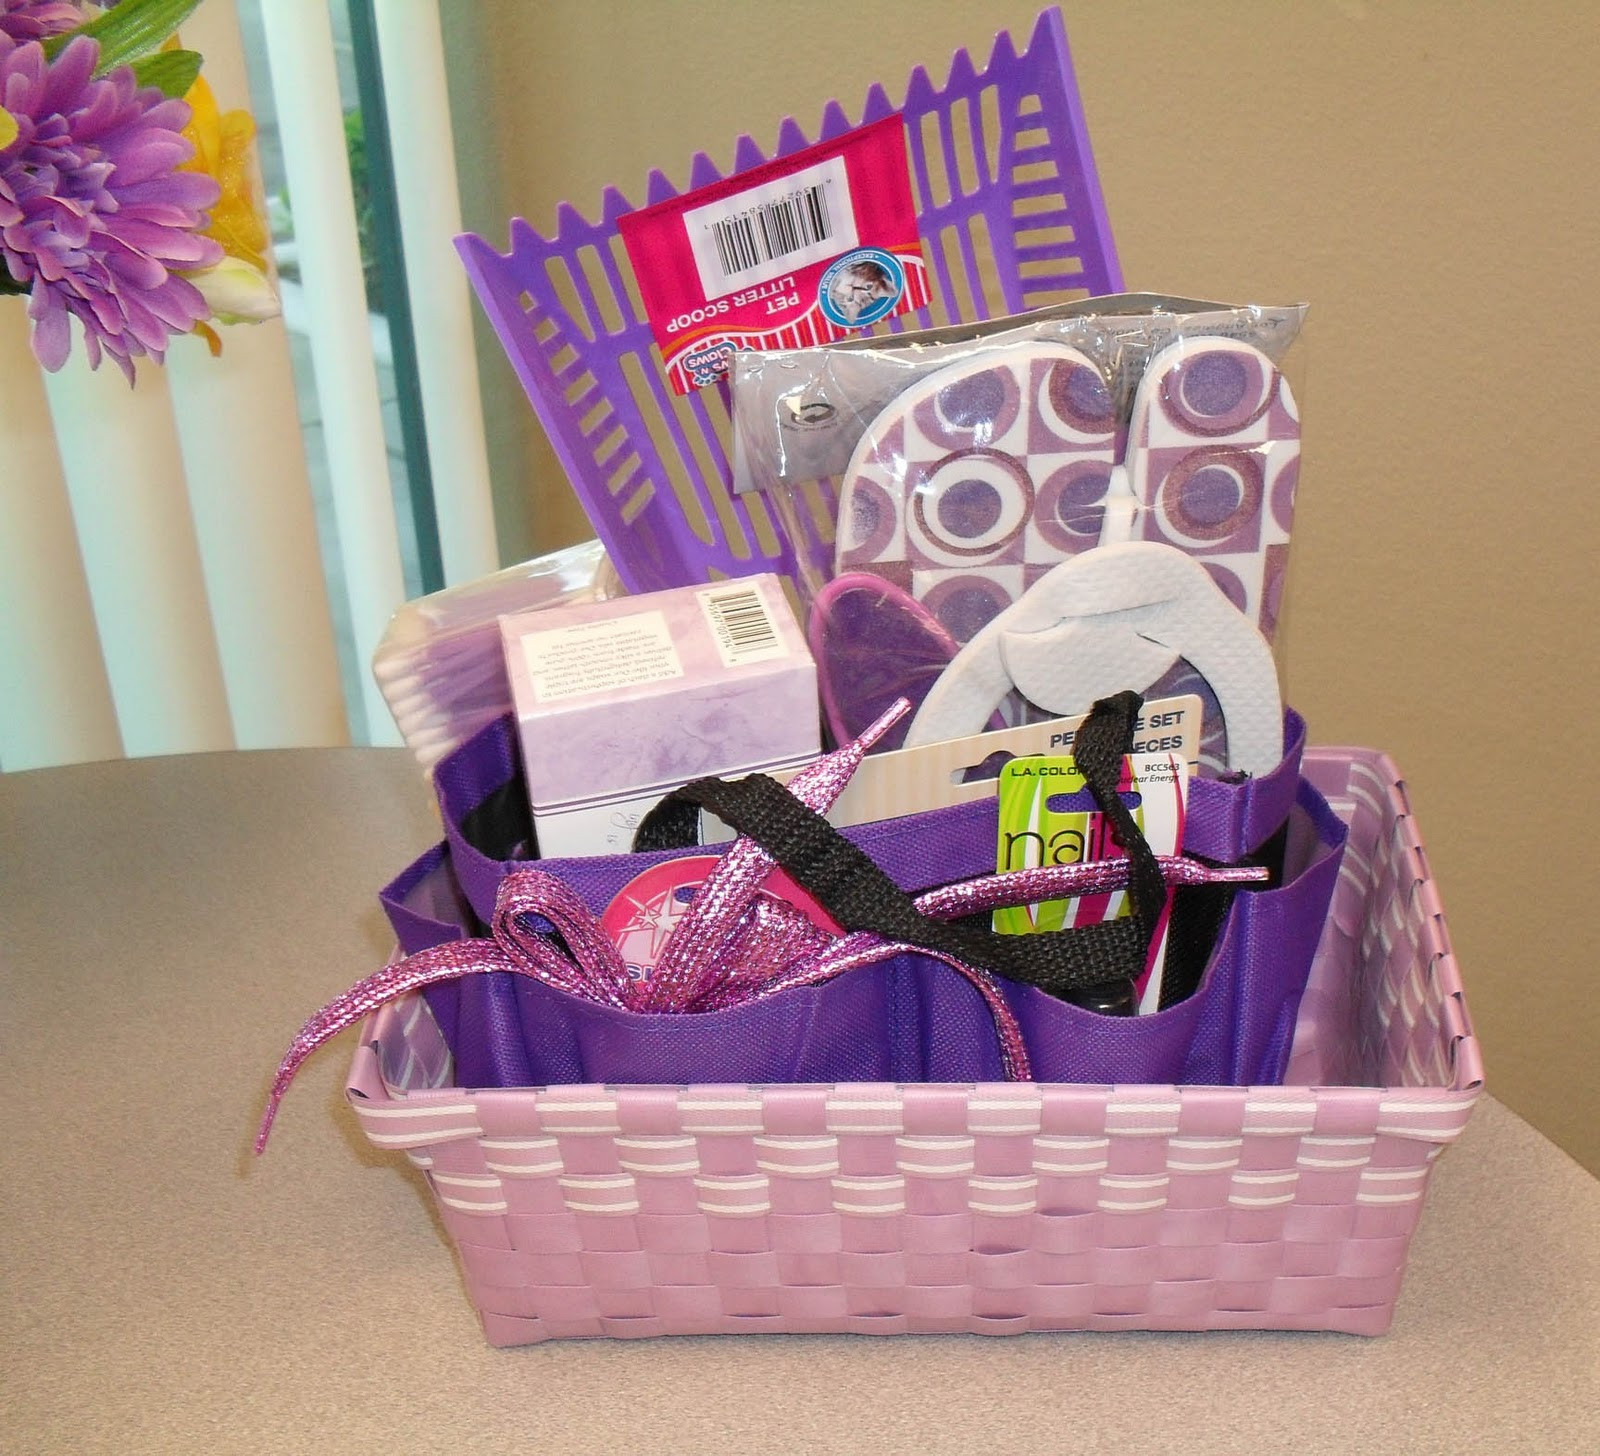 Best ideas about Dollar Store Gift Basket Ideas . Save or Pin thedollarstorediva Dollar Store Gift Baskets Always a Hit Now.